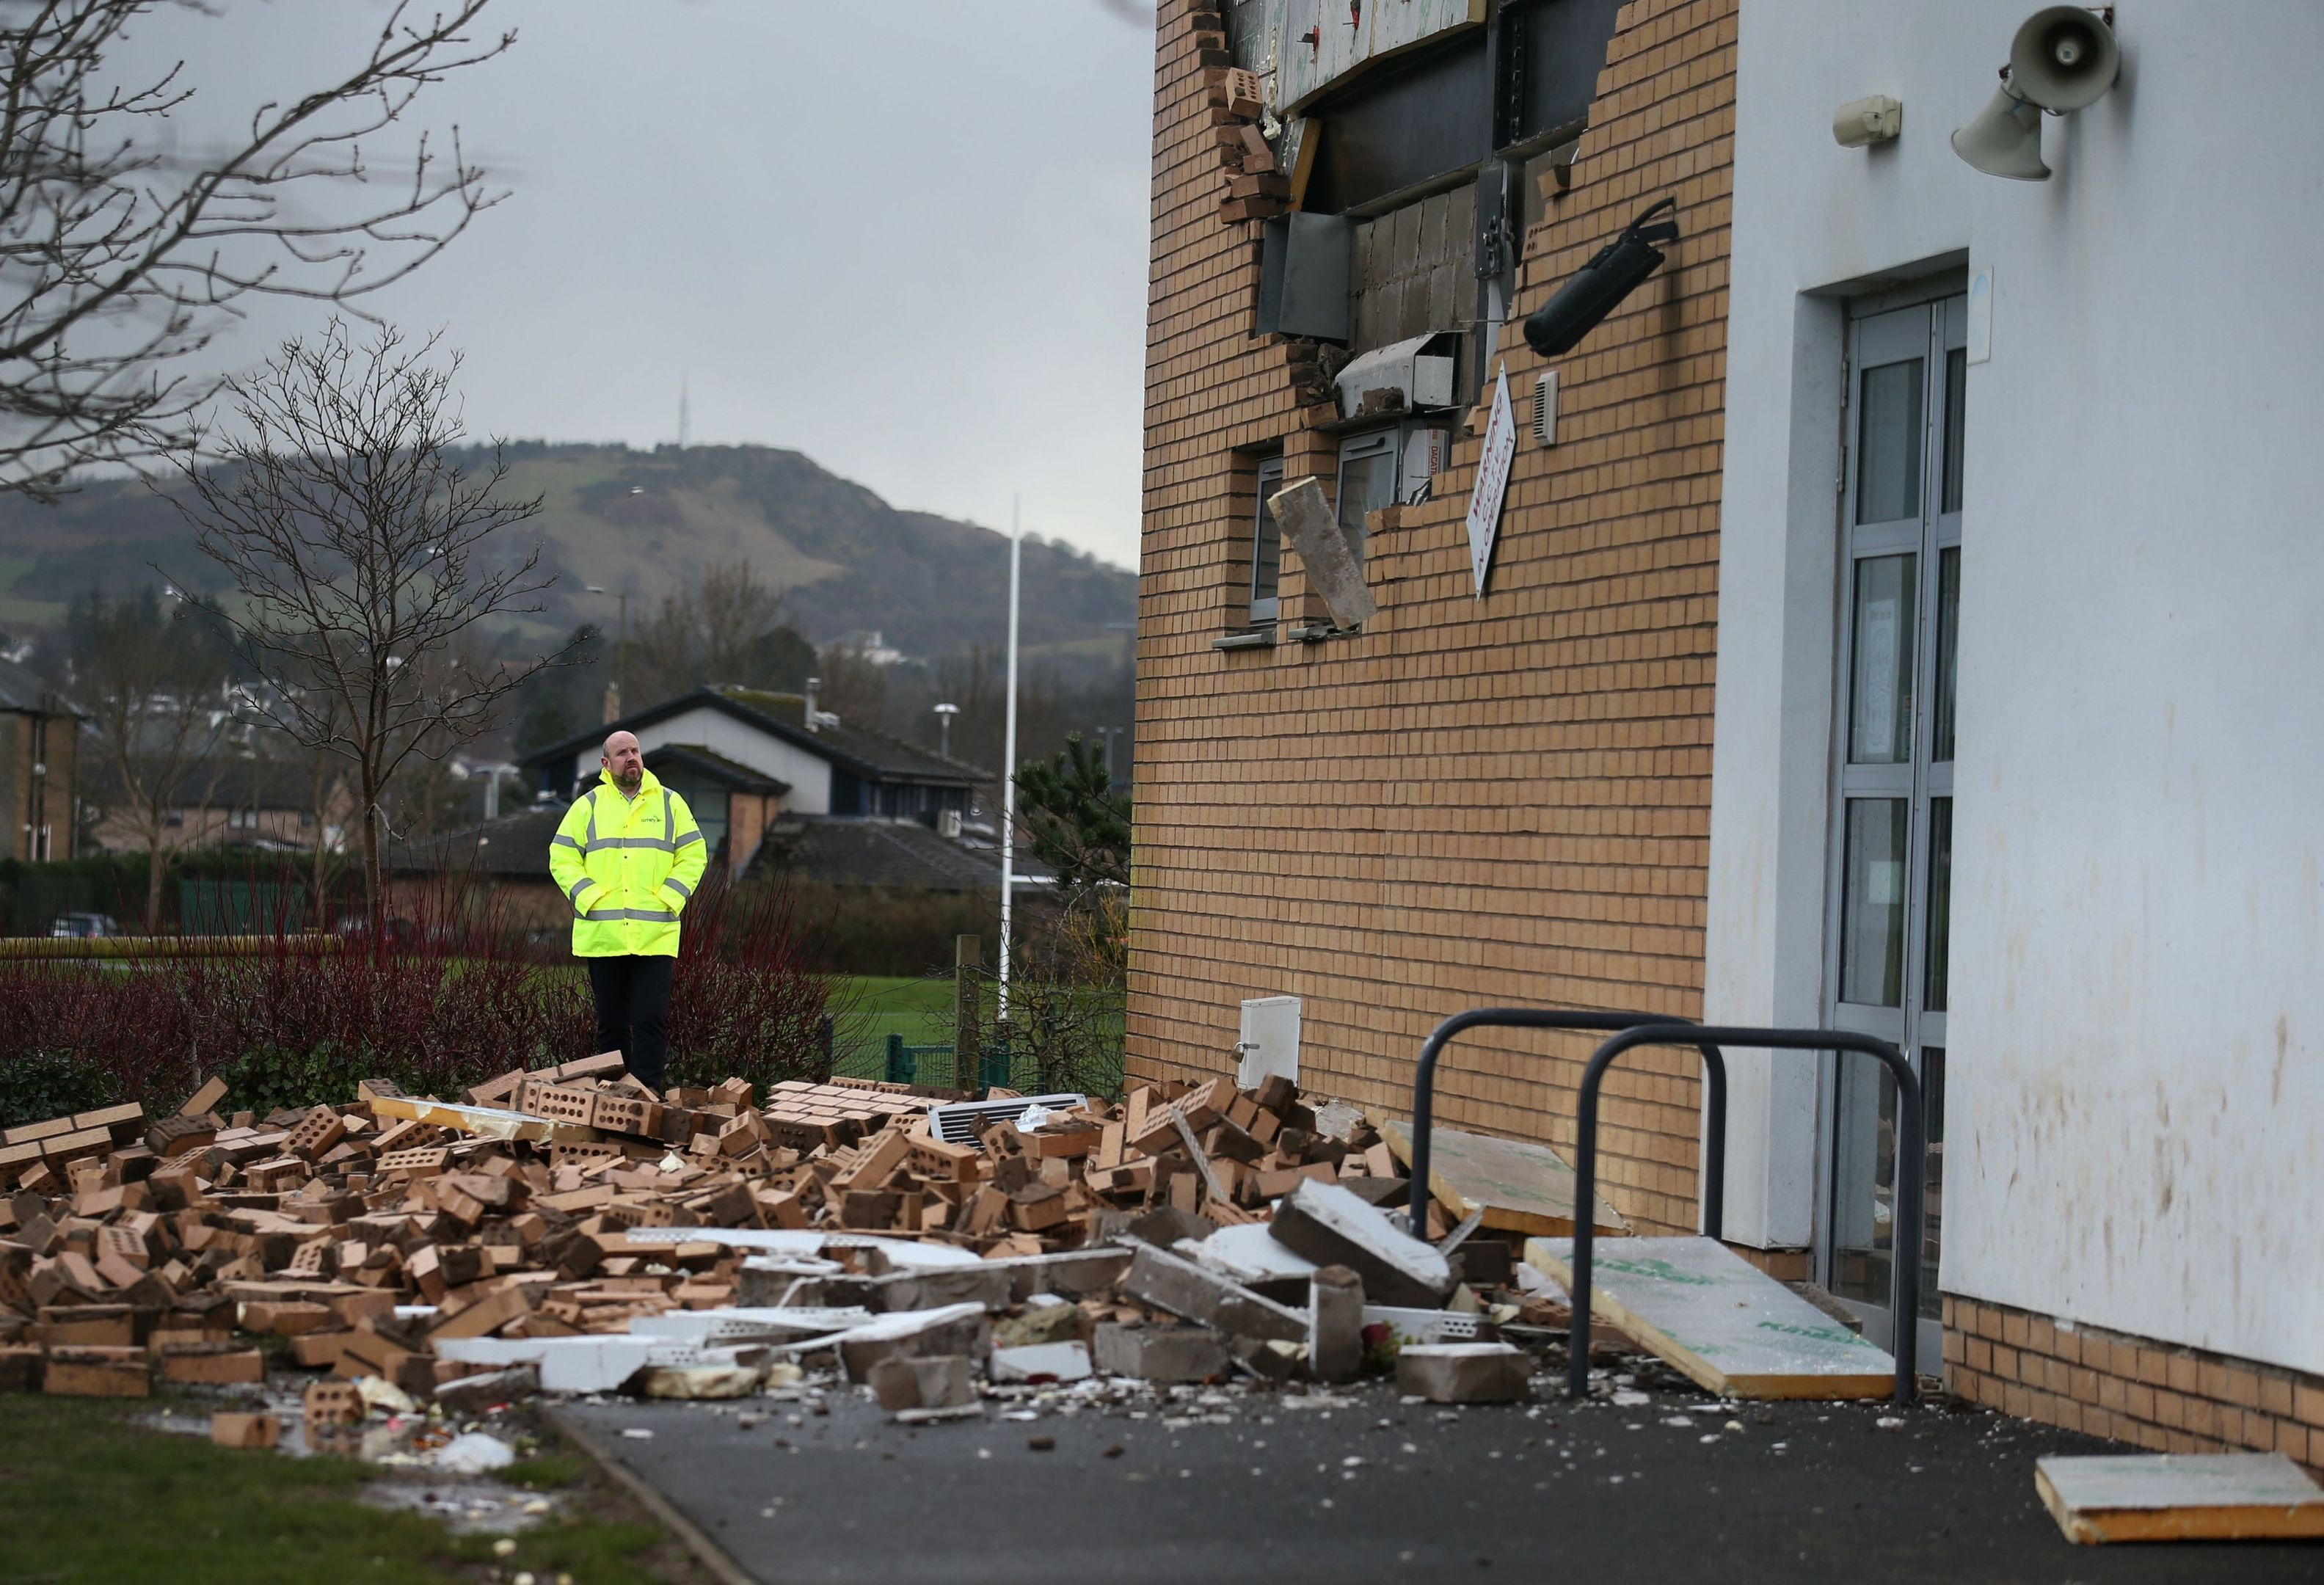 A collapsed wall at Oxgangs Primary School in Edinburgh after Storm Gertrude (Andrew Milligan / PA)